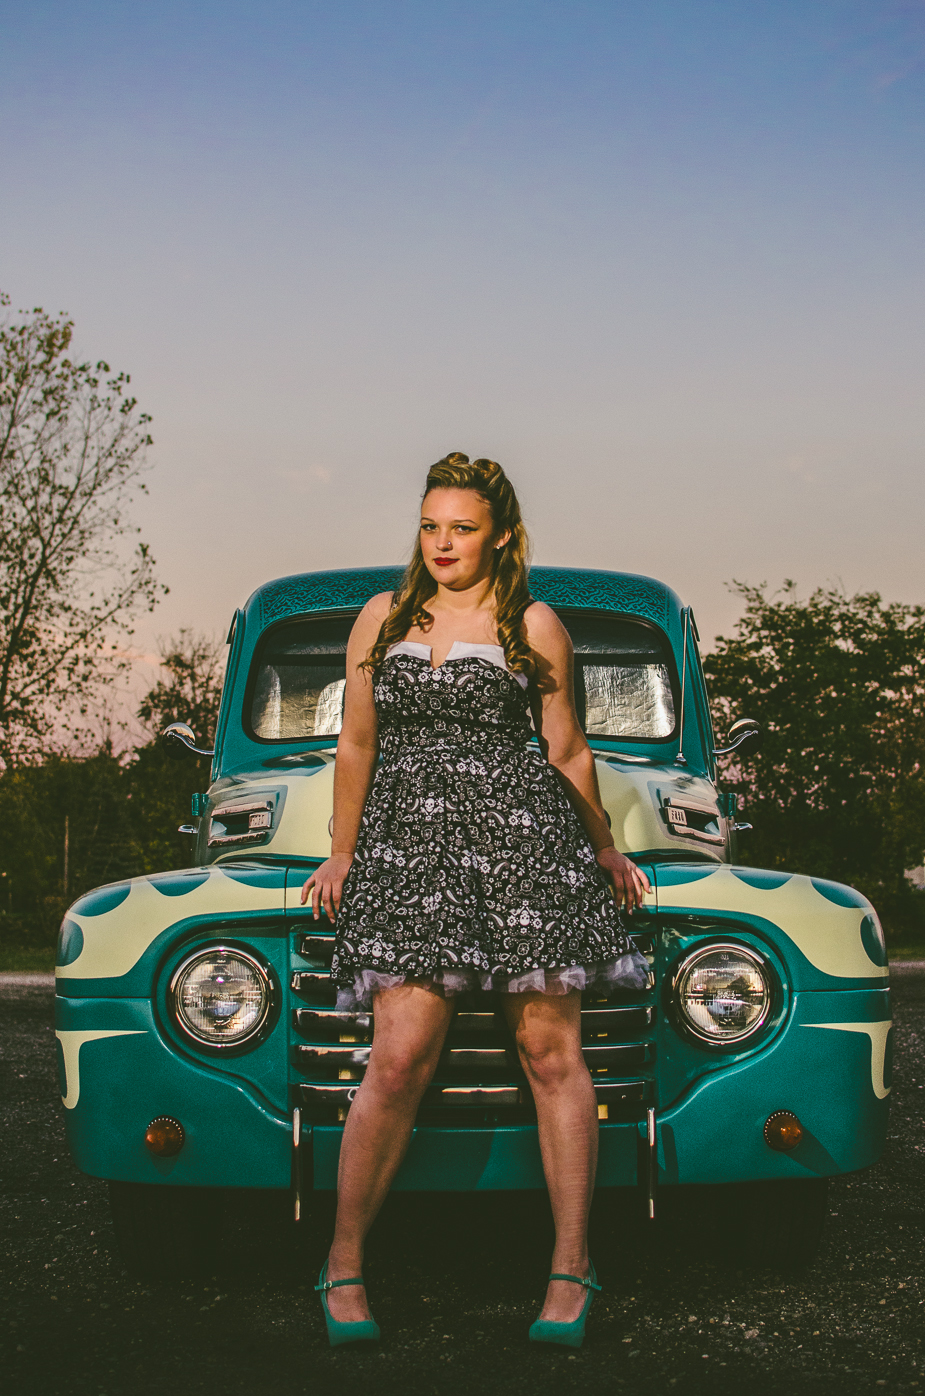 Taylor pinup model High School senior 1949 Ford Truck